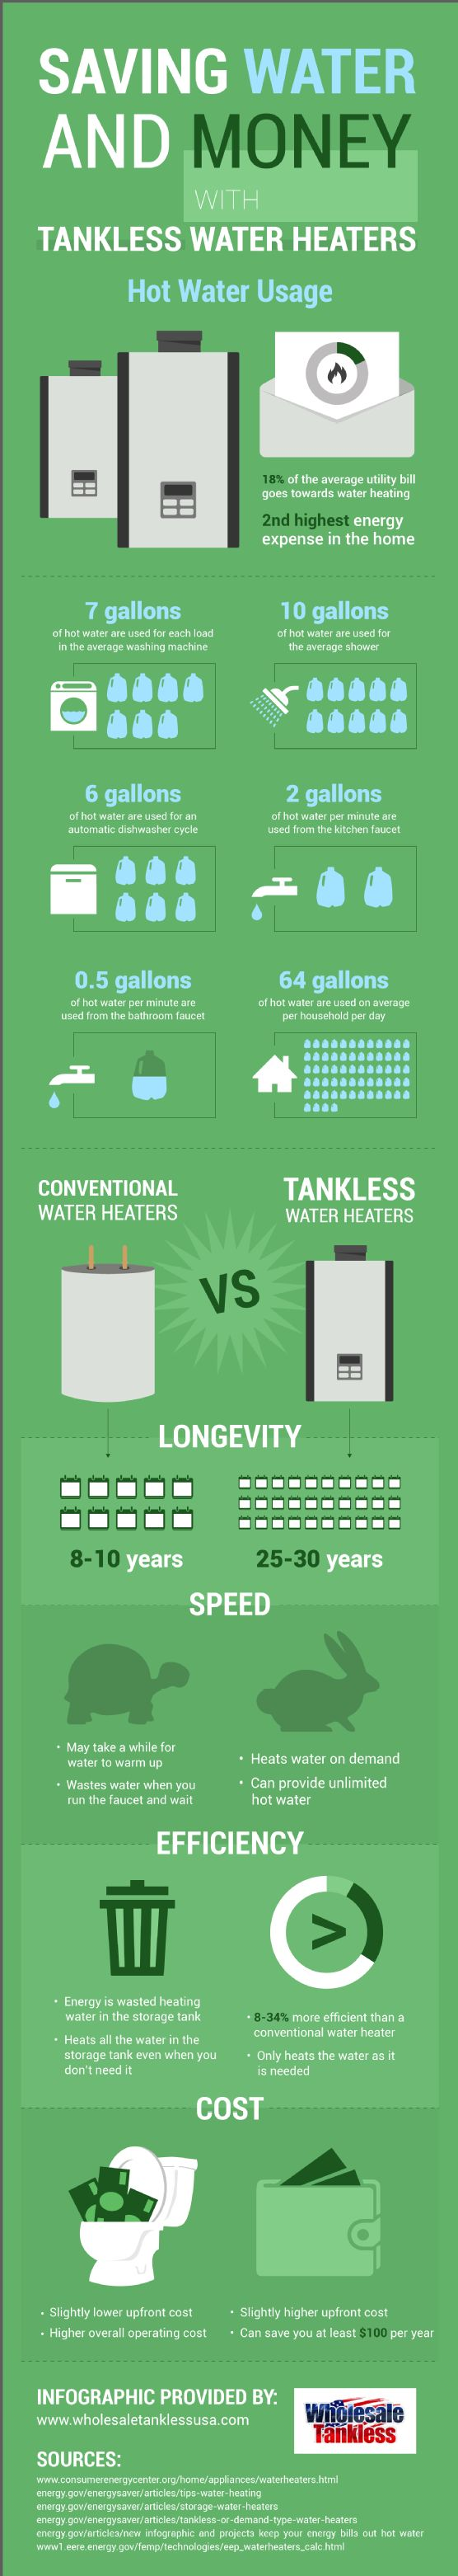 Saving Water and Money with Tankless Water Heaters